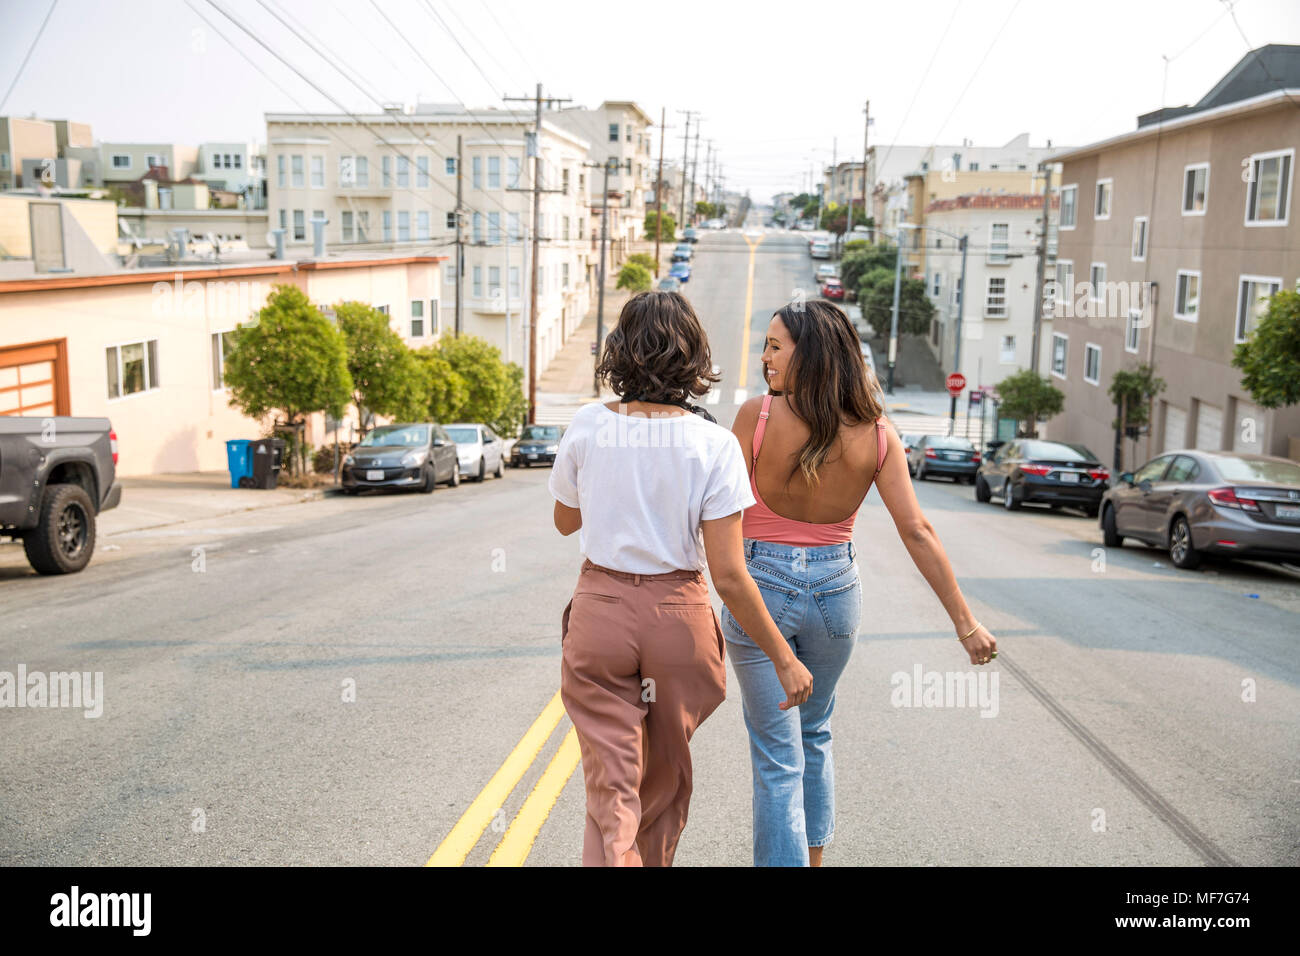 Two young women walking down the street - Stock Image